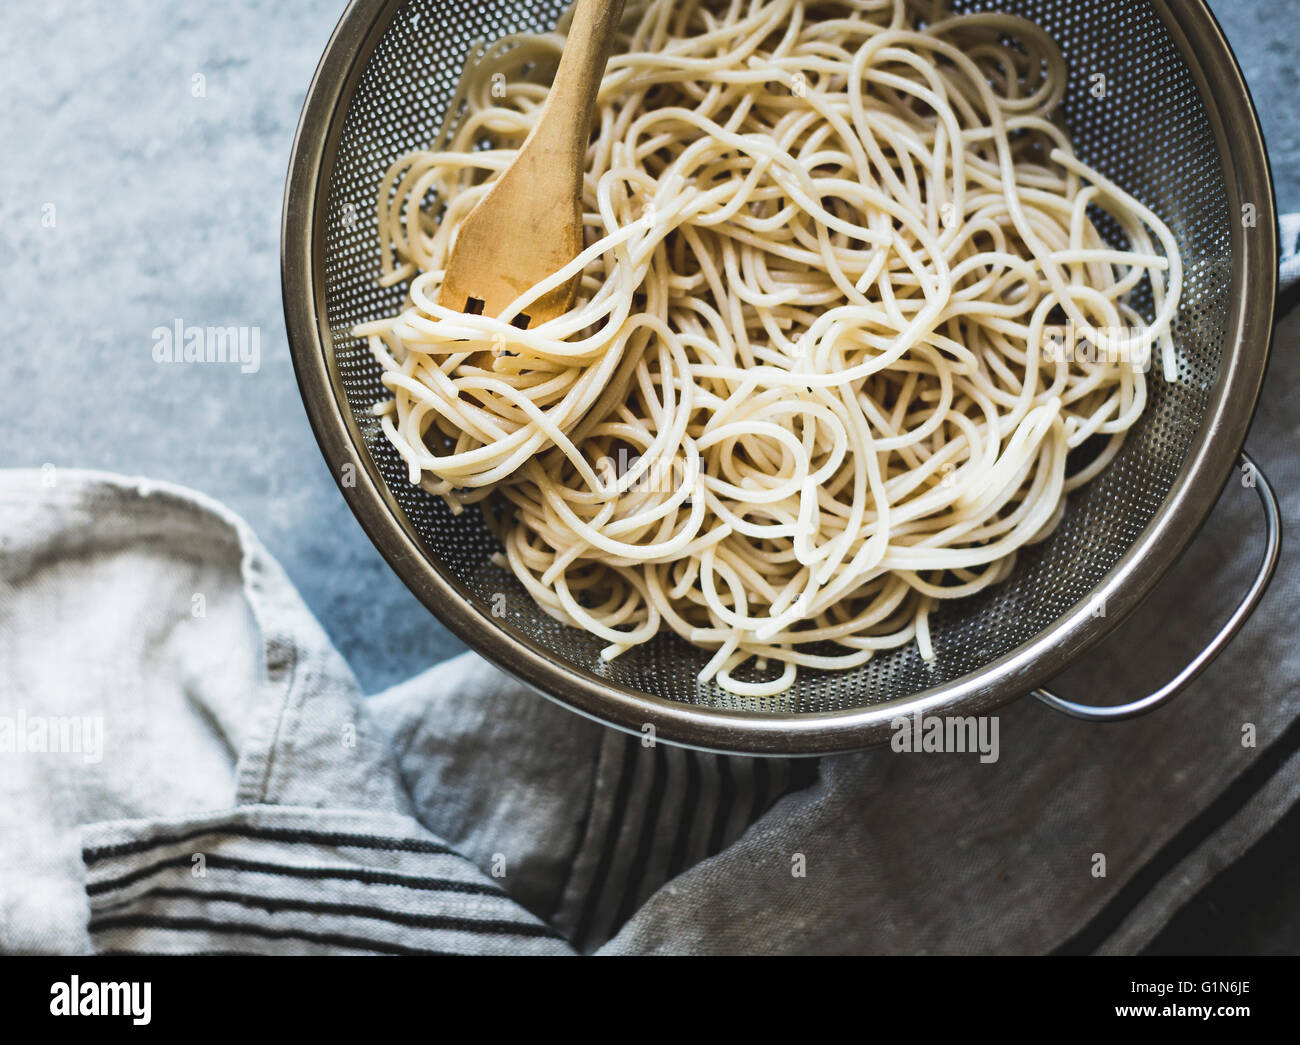 Rice noodles - Stock Image